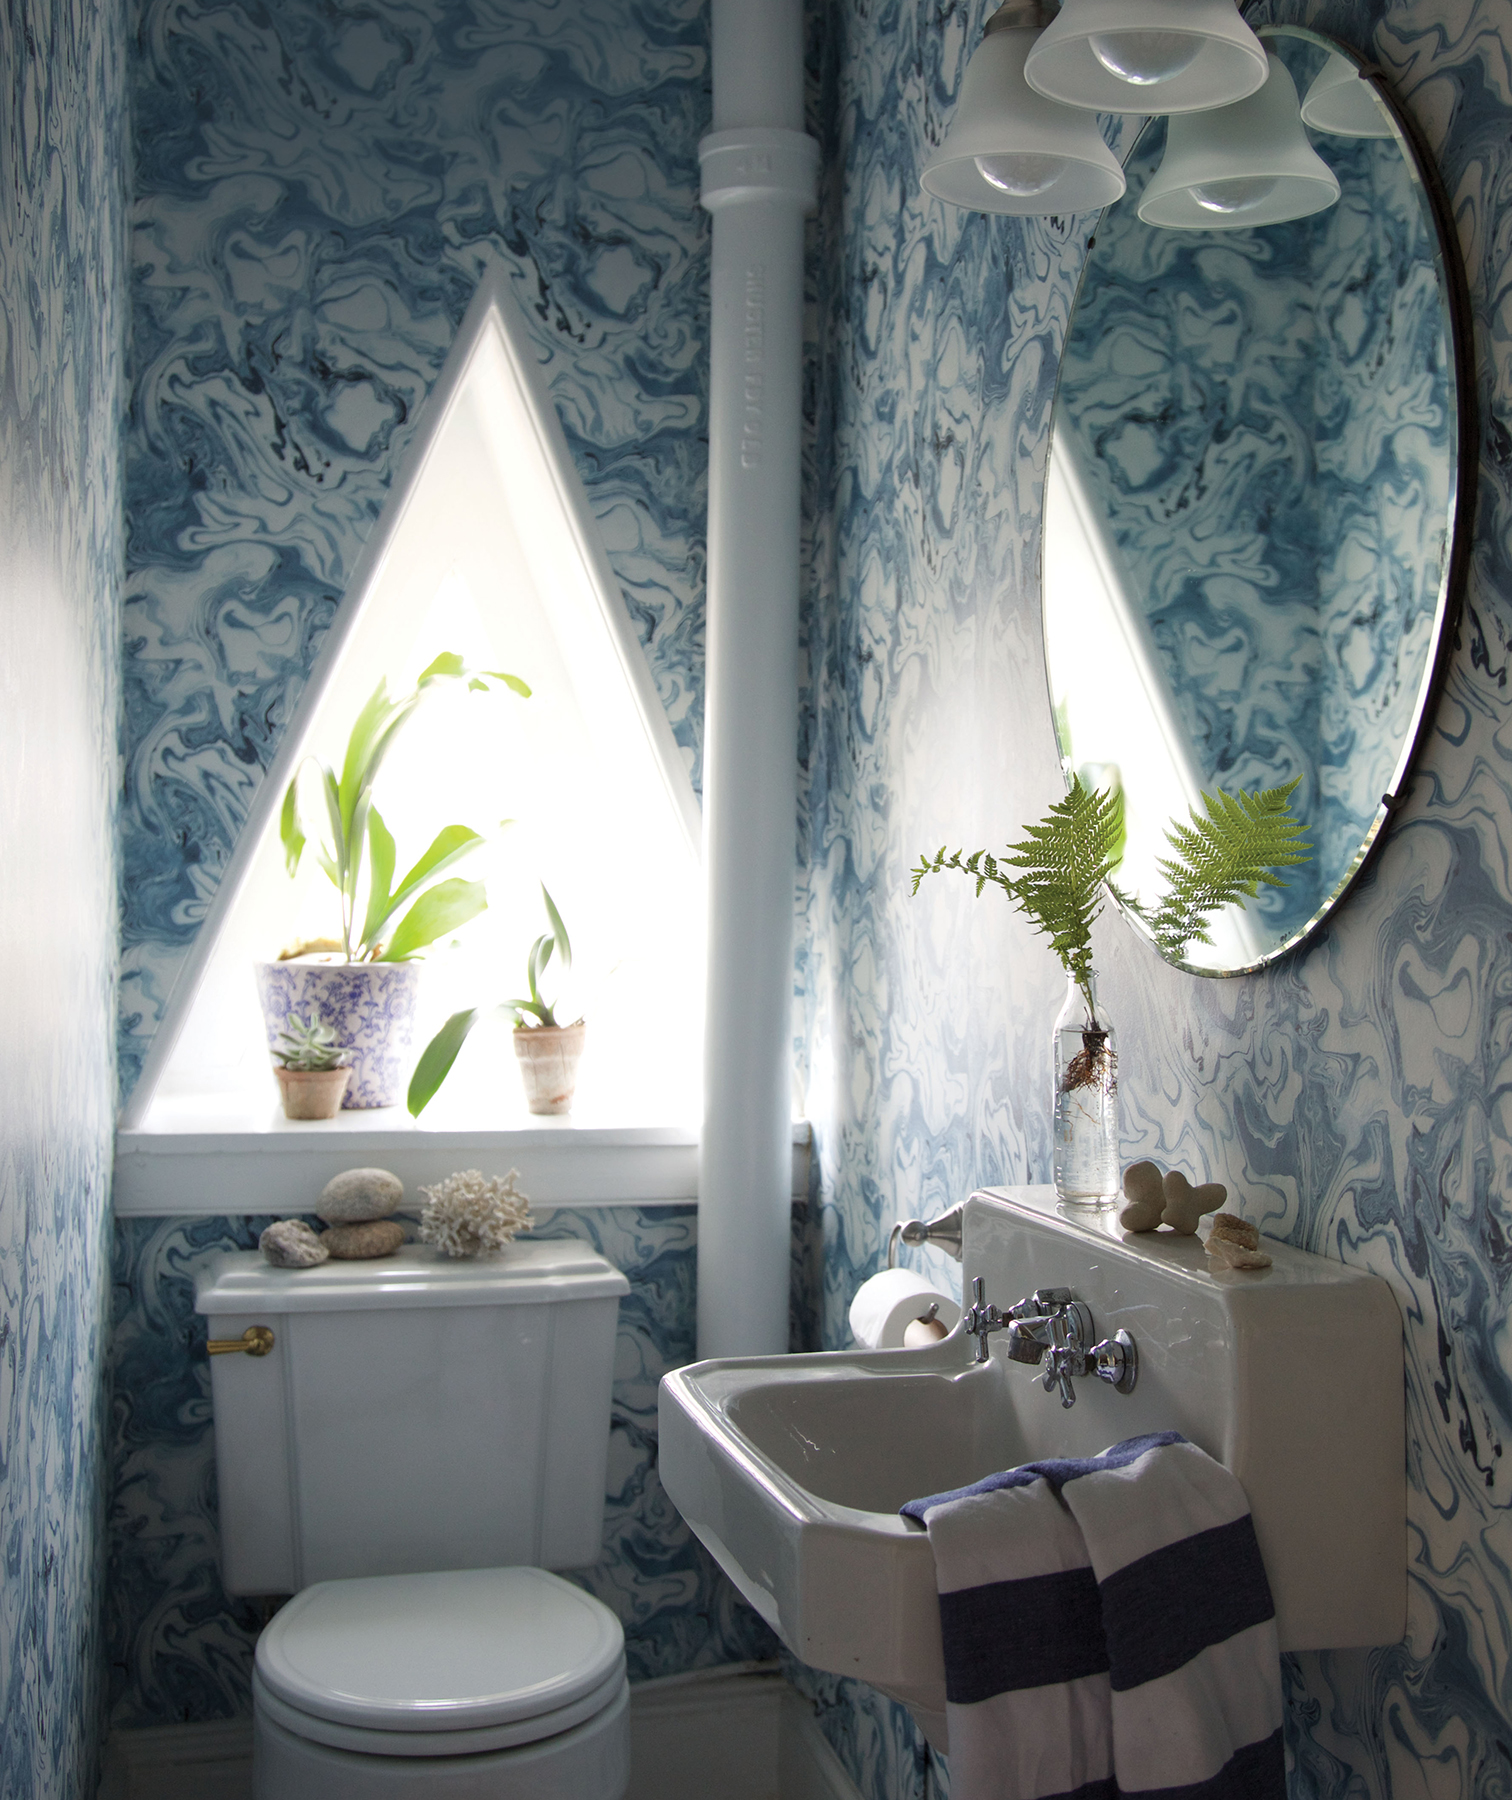 Bathroom with blue patterned walls